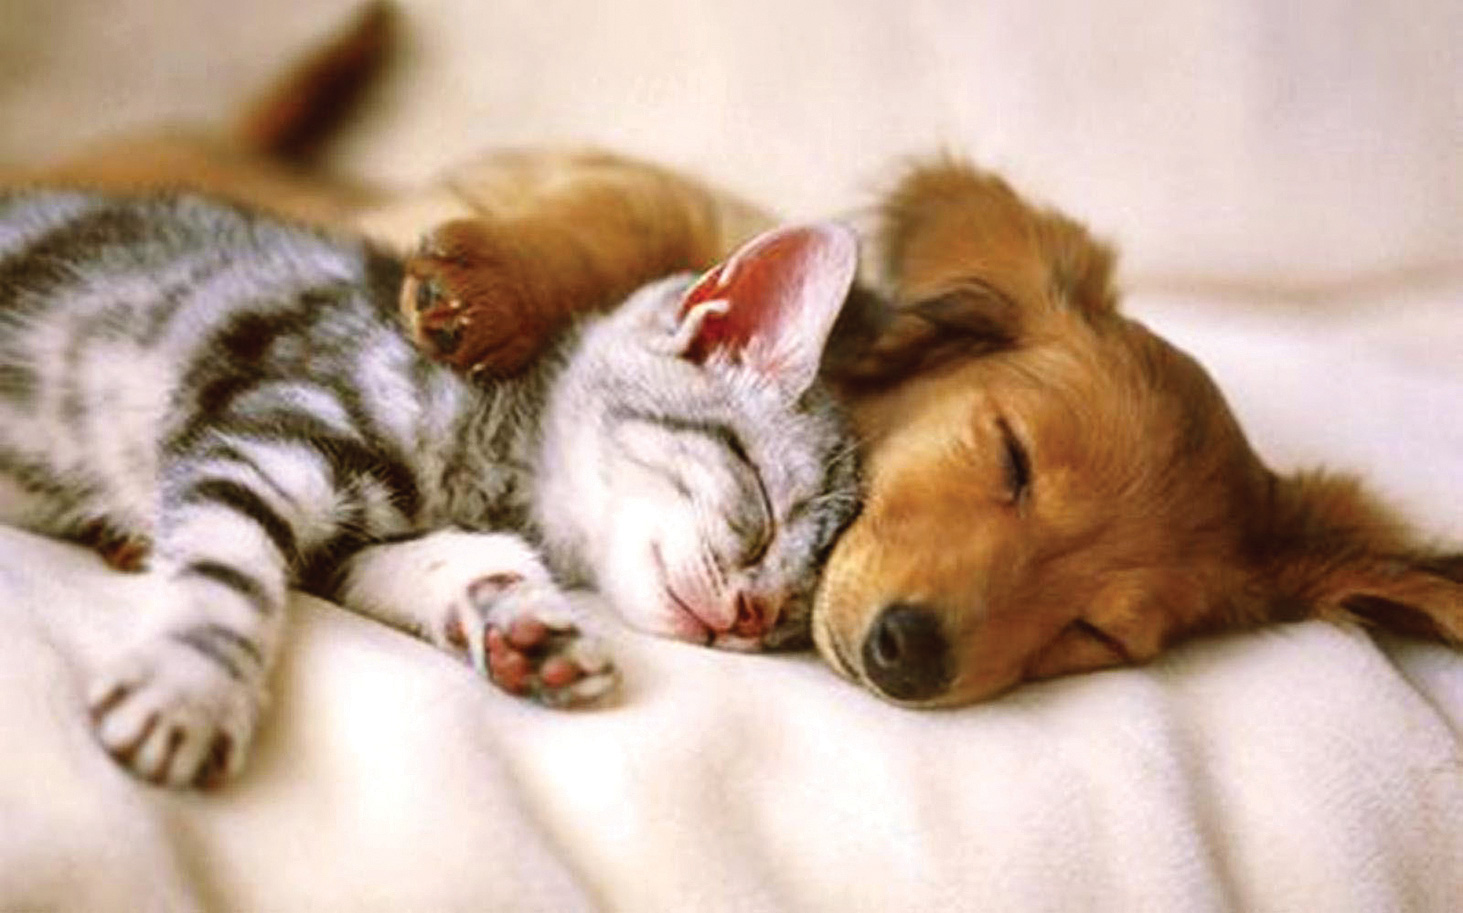 The homeless pets can rest easy knowing that you care.